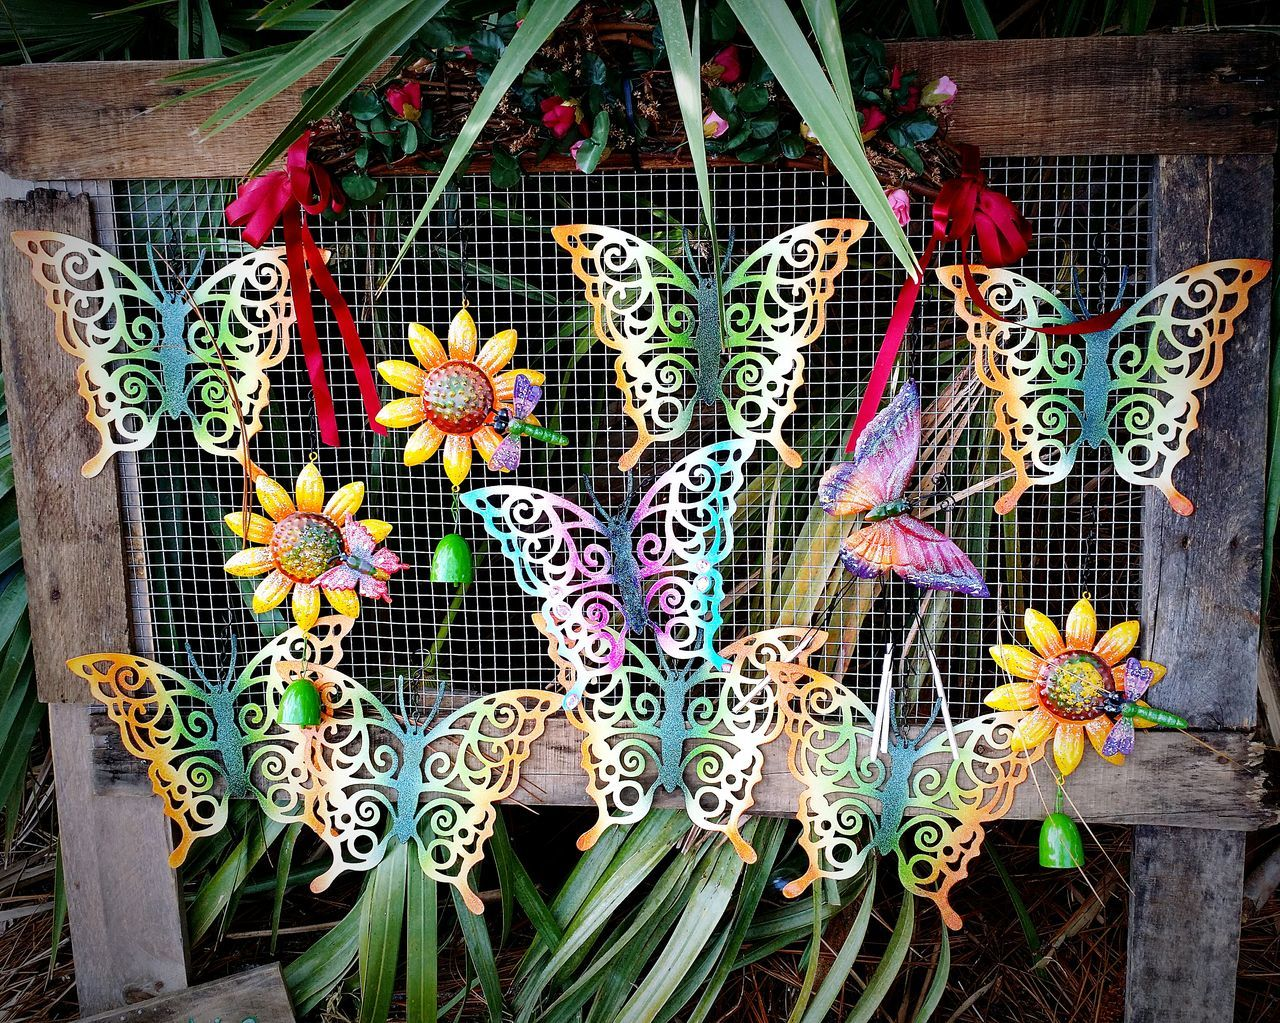 Check This Out Beautiful butterflies at Renaissance Fair Artwork Melbourne FL